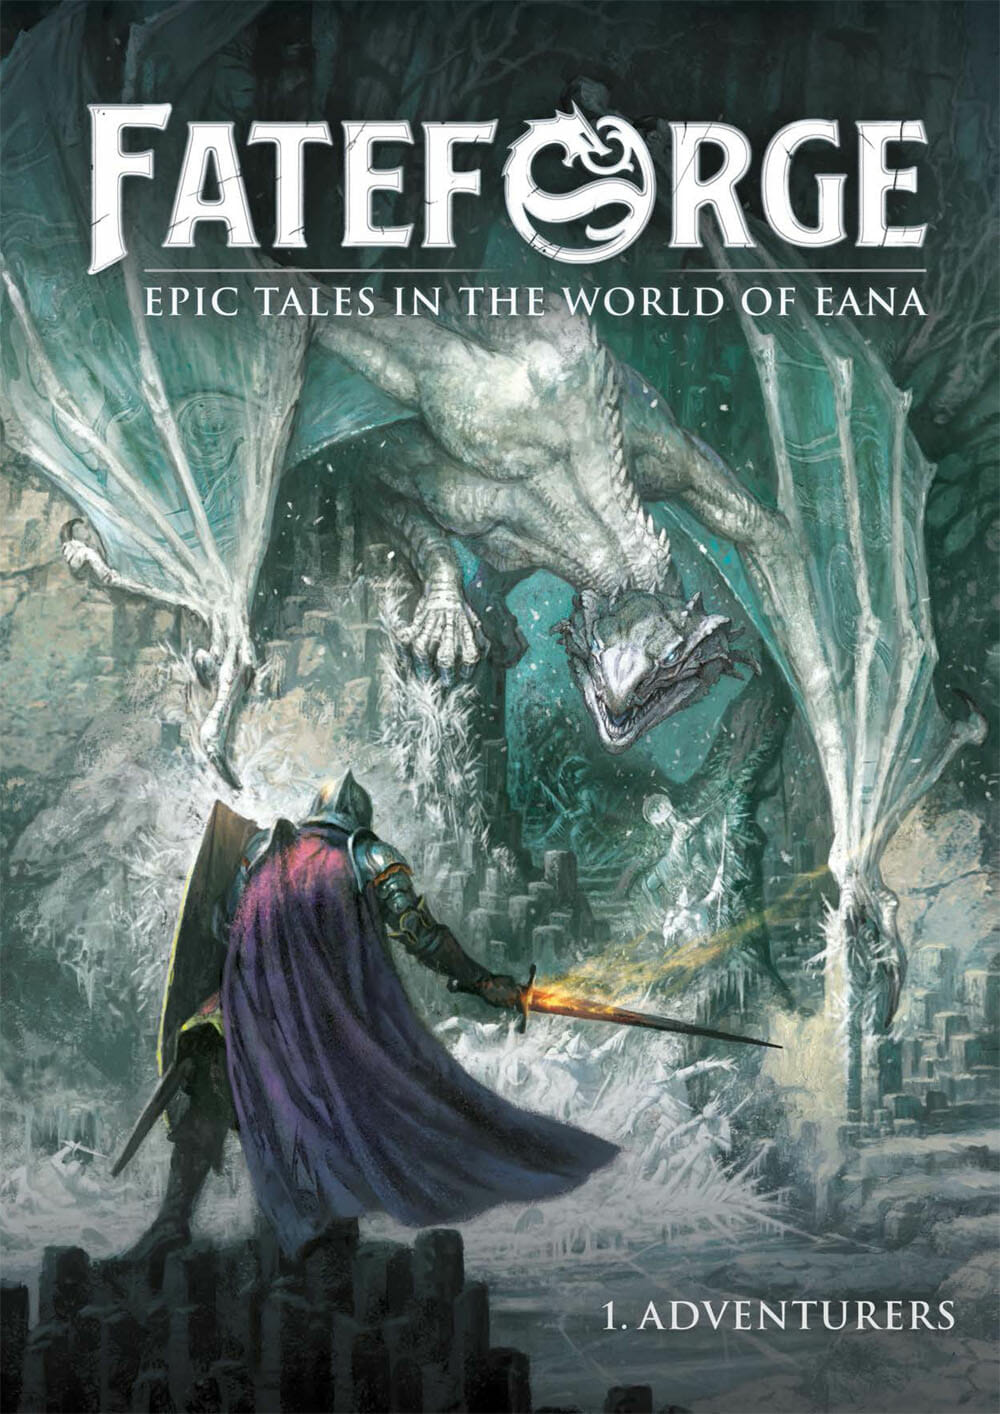 D&D with the gloves off: A review of Fateforge - Adventurers